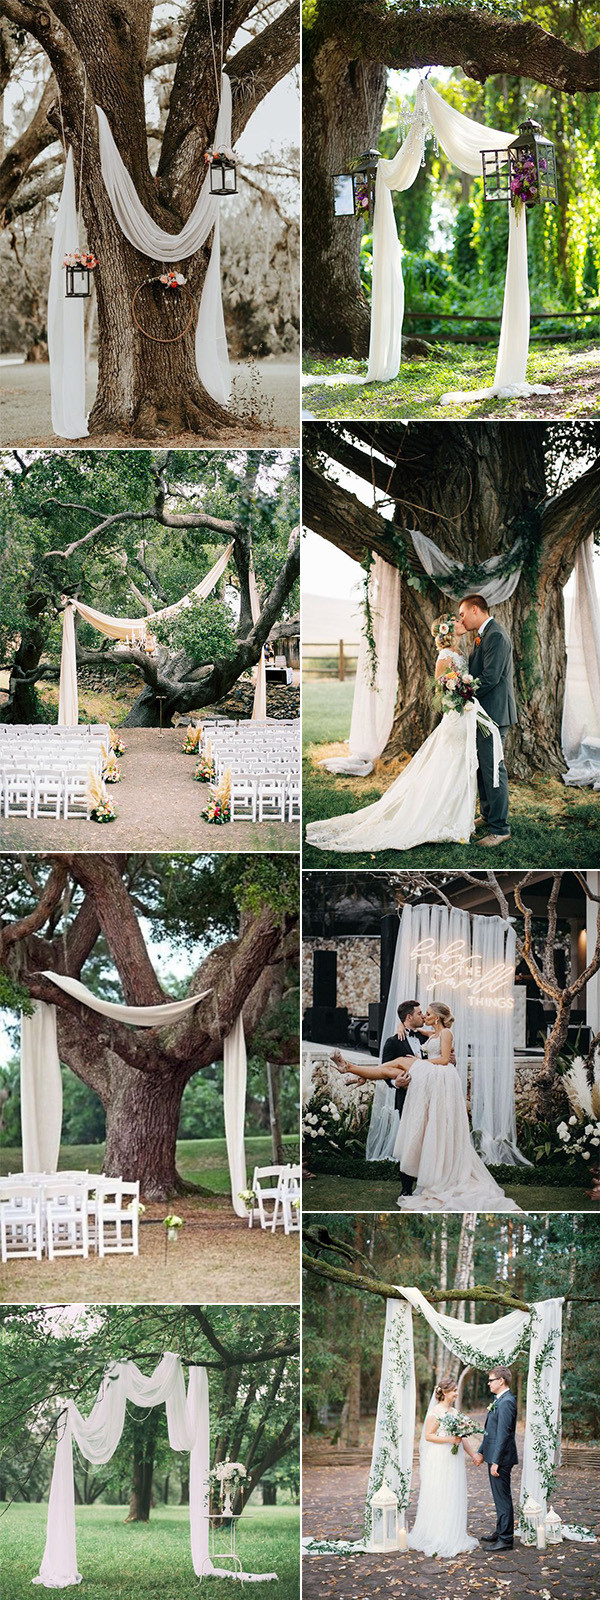 wedding ceremony arches with trees on a budget